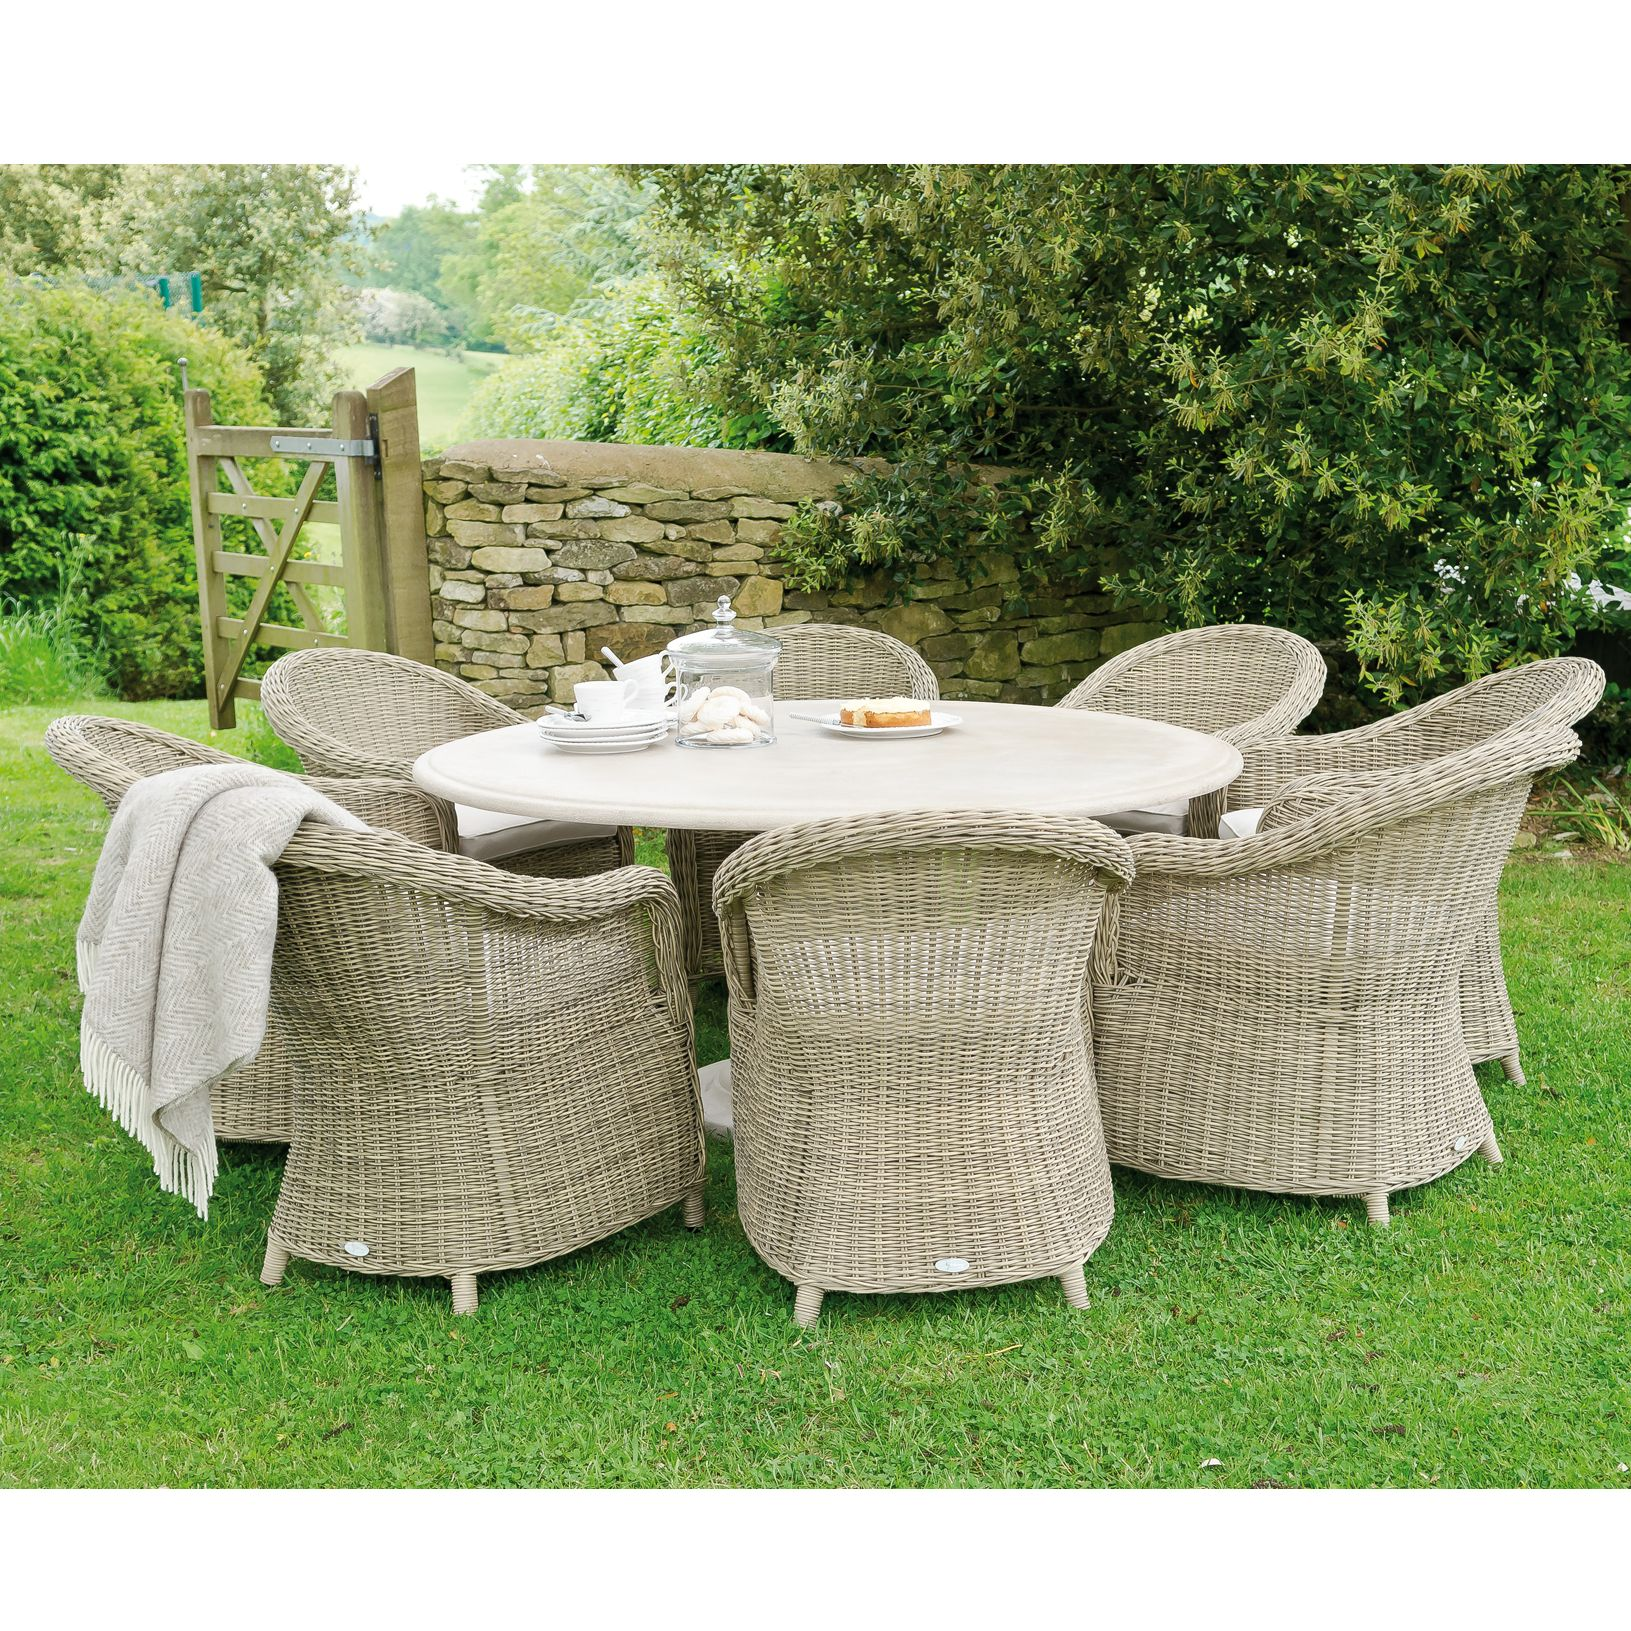 Neptune Portland Round 6 Seater Outdoor Dining Table